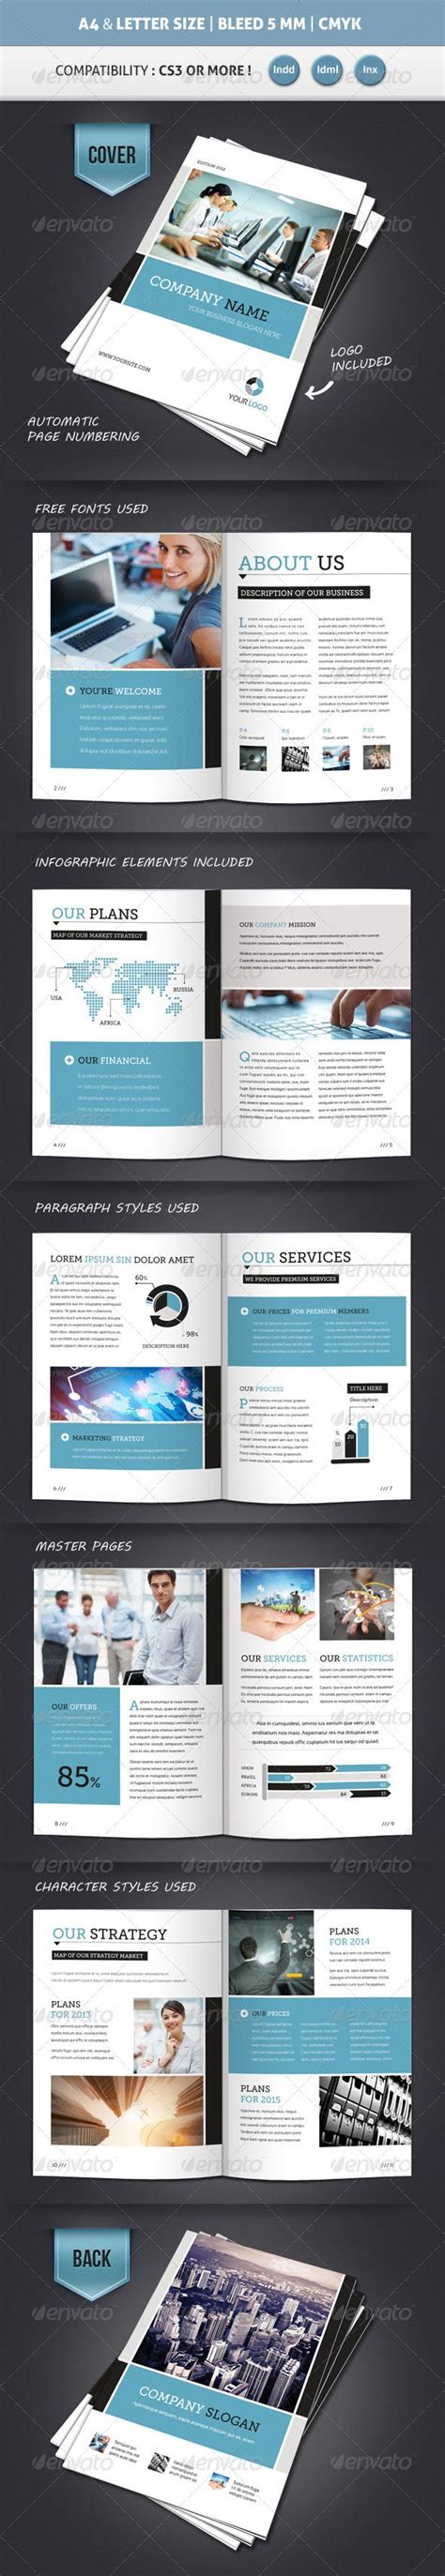 Free Business Brochure 8 Pages A4 Free Psd Corporate Brochure Template A4 Letter 12 Pages